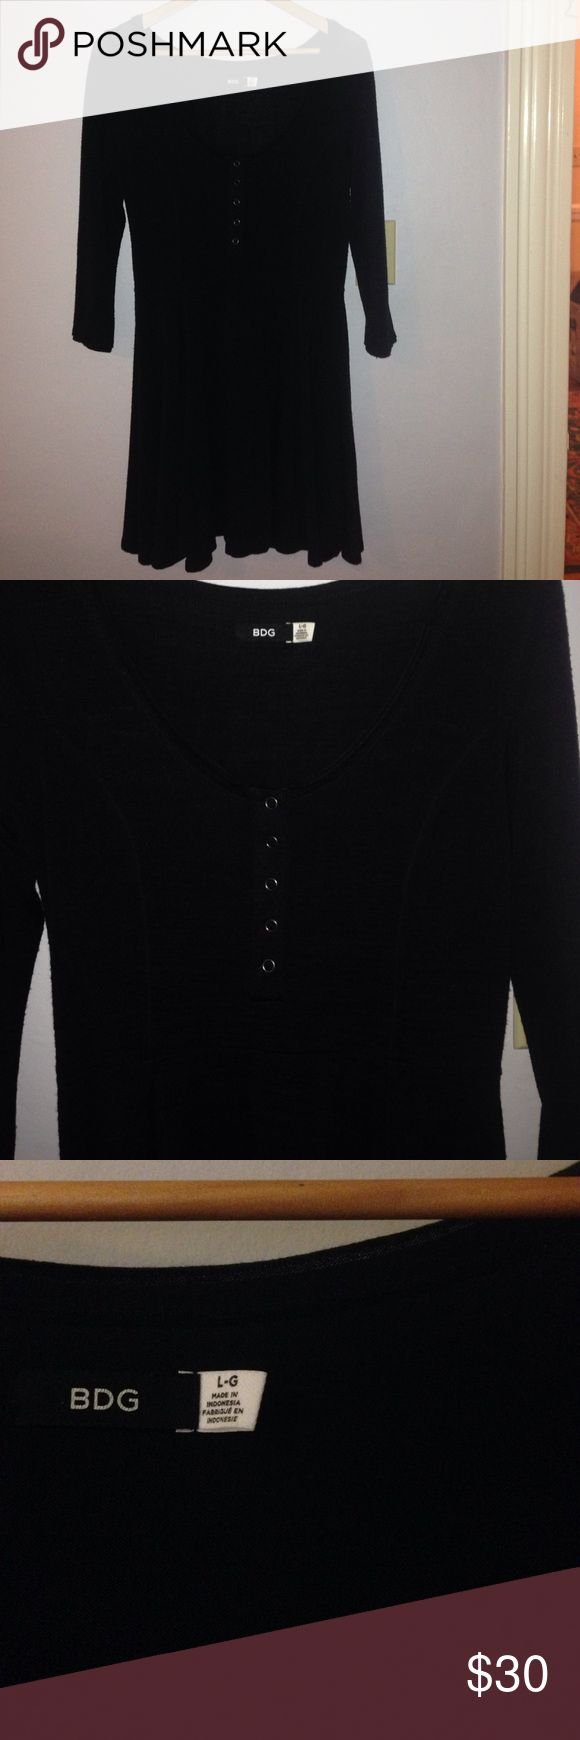 Urban outfitters long sleeve dress Urban outfitter BDG long sleeve dress in black. There are three buttons on the front. Nice and simple silhouette. Never worn, very good condition! Size large! Great with sneakers of with tights and heels! Urban Outfitters Dresses